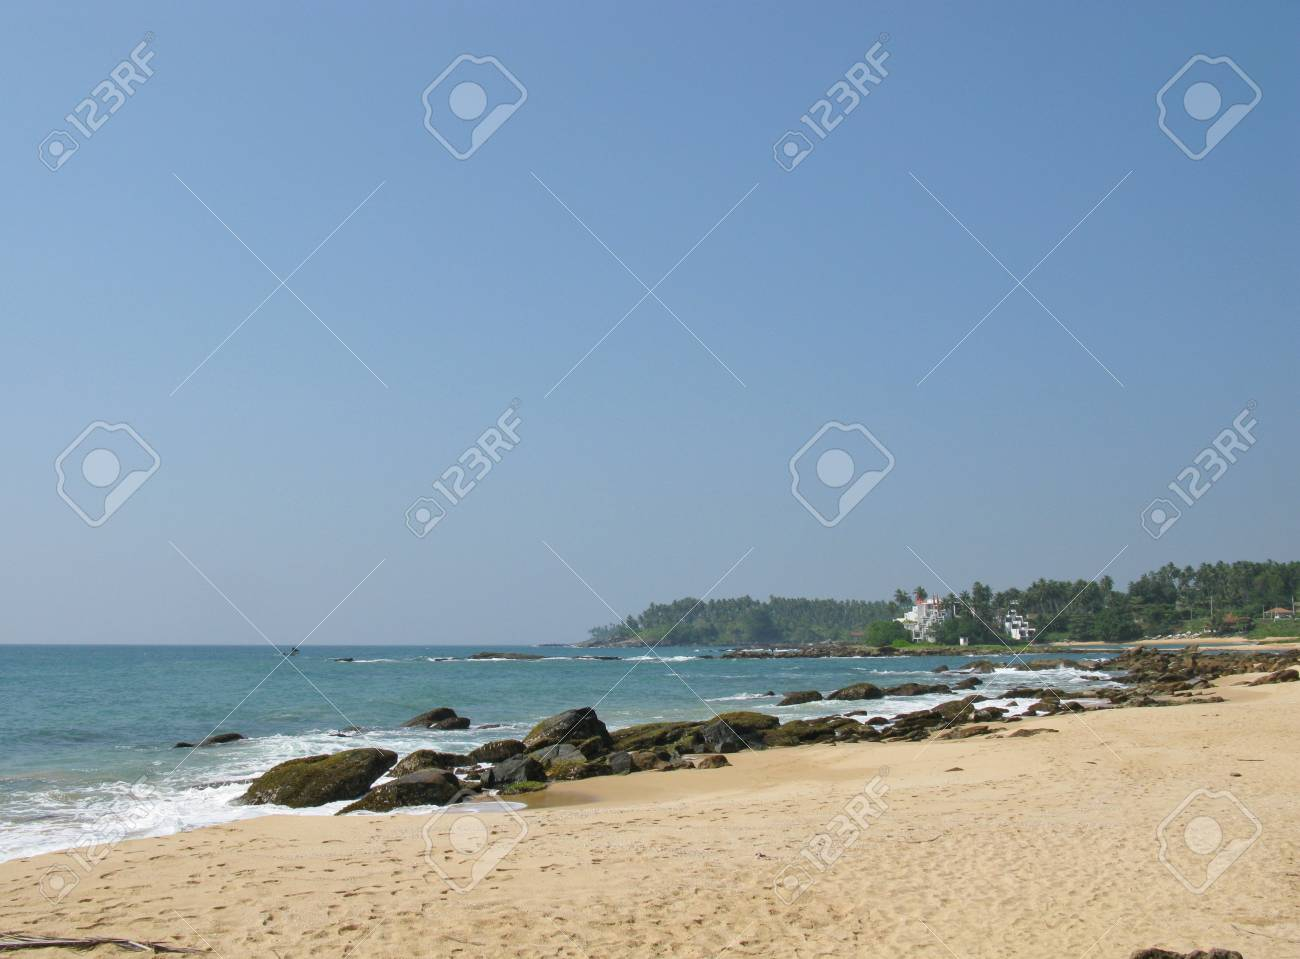 The Indian ocean with waves and breakers on the coast of Sri Lanka Stock Photo - 18264044